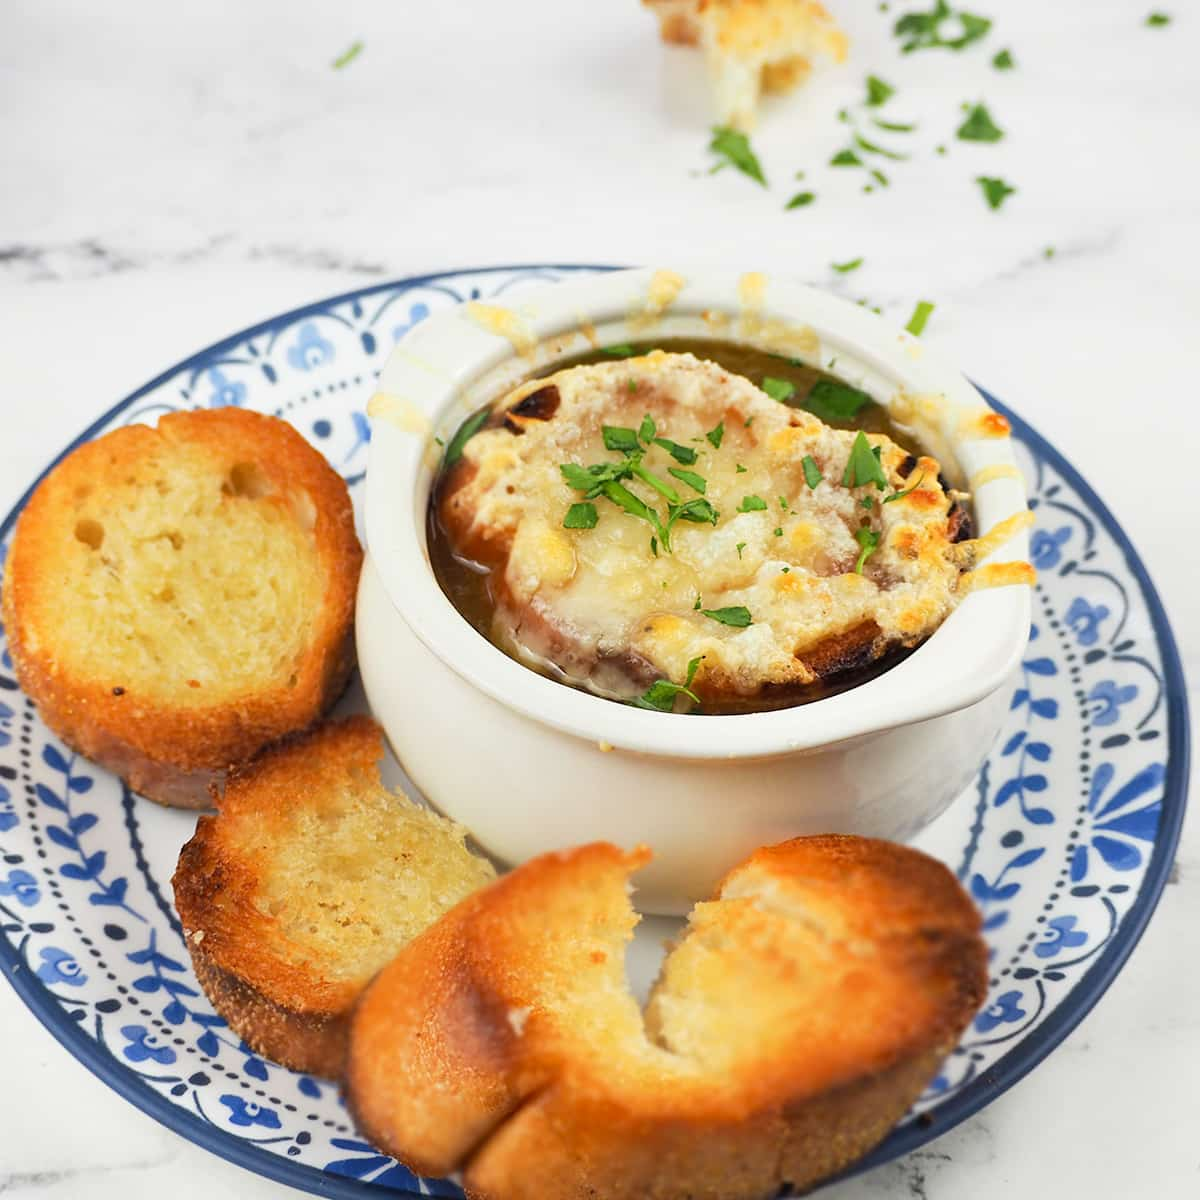 soup topped with cheese on plate with toasted bread